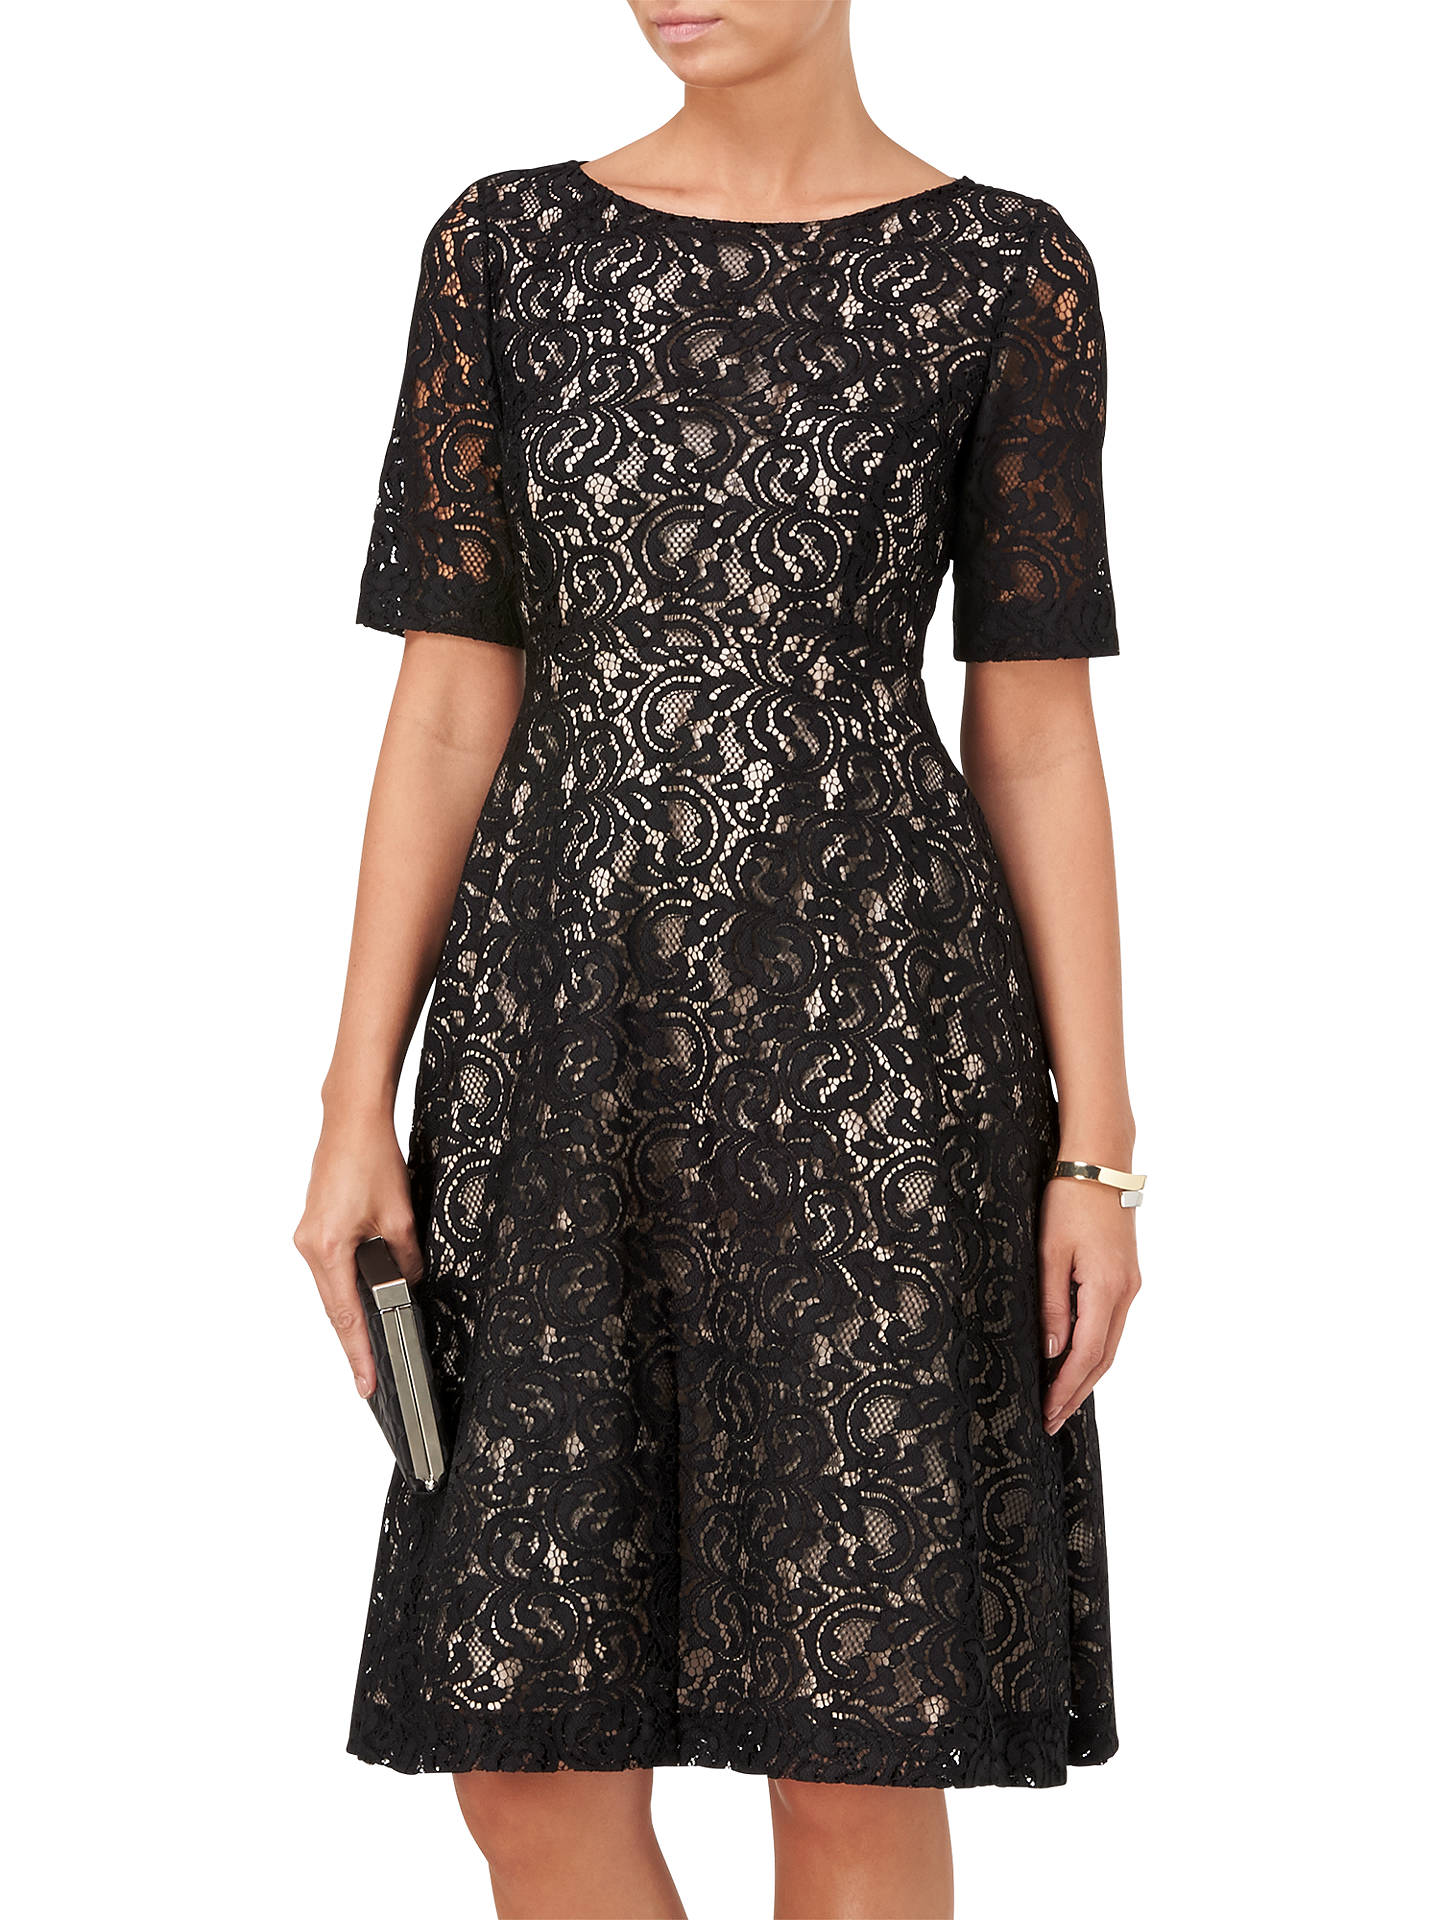 BuyPhase Eight Louanna Lace Dress, Black And Nude, 8 Online at johnlewis.com